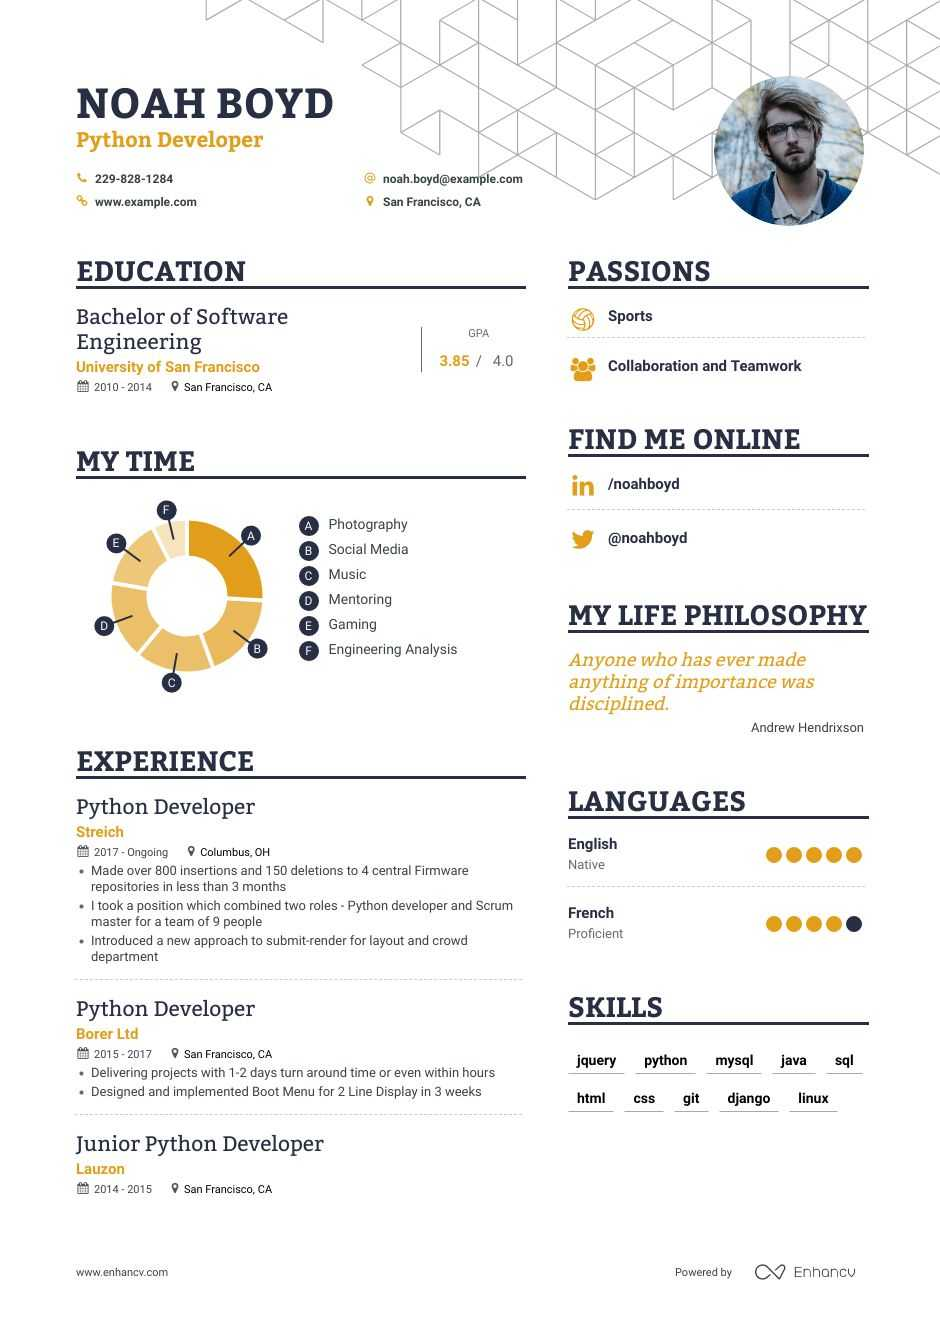 python developer resume examples pro tips featured enhancv for years experience math Resume Python Developer Resume For 2 Years Experience